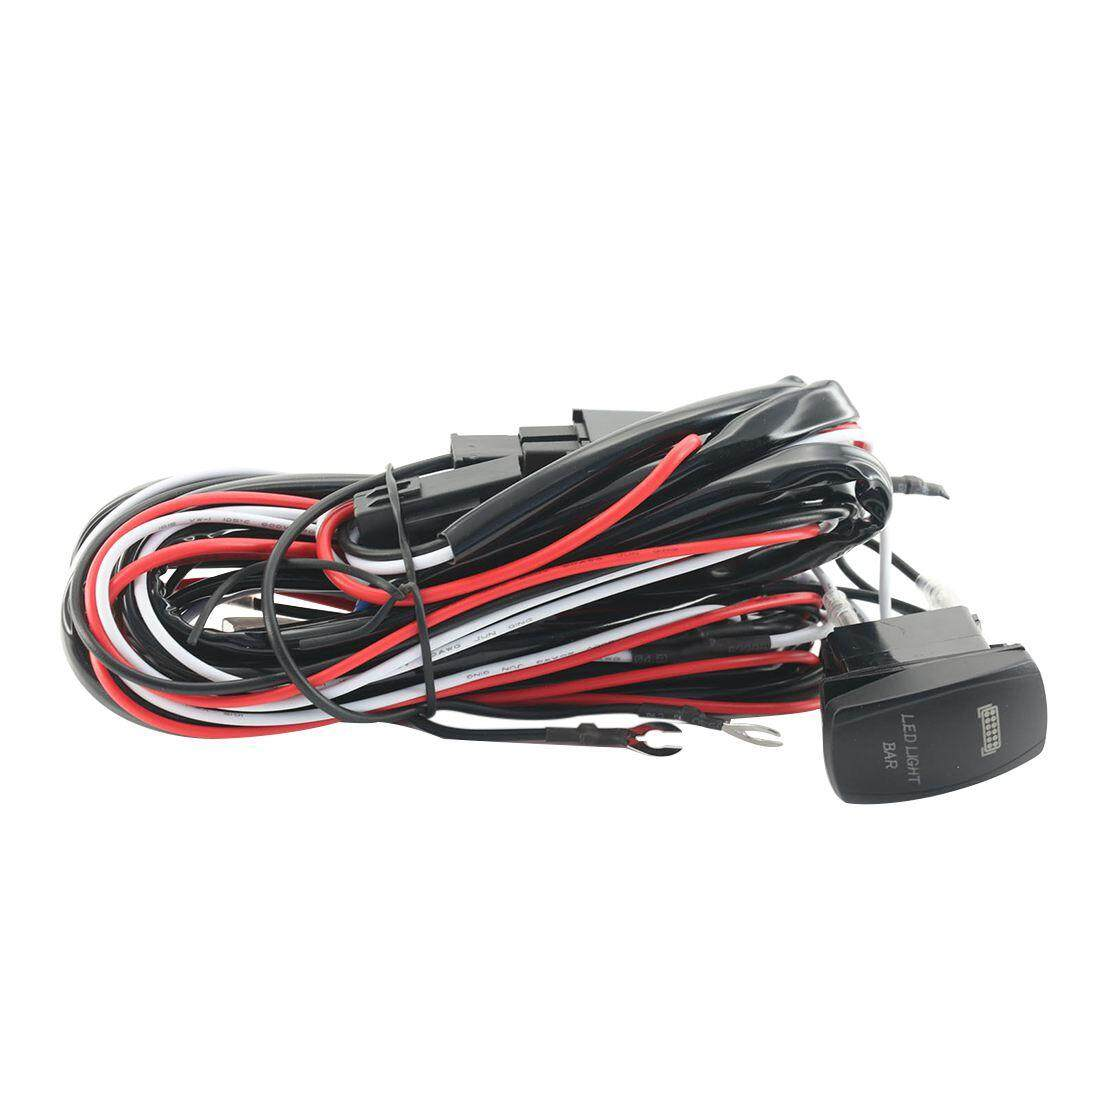 The Price Of 5pin 40a Car Relay Wiring Harness Kit With Led Light For Bars 12v 9ft Power Switch Bar Up To